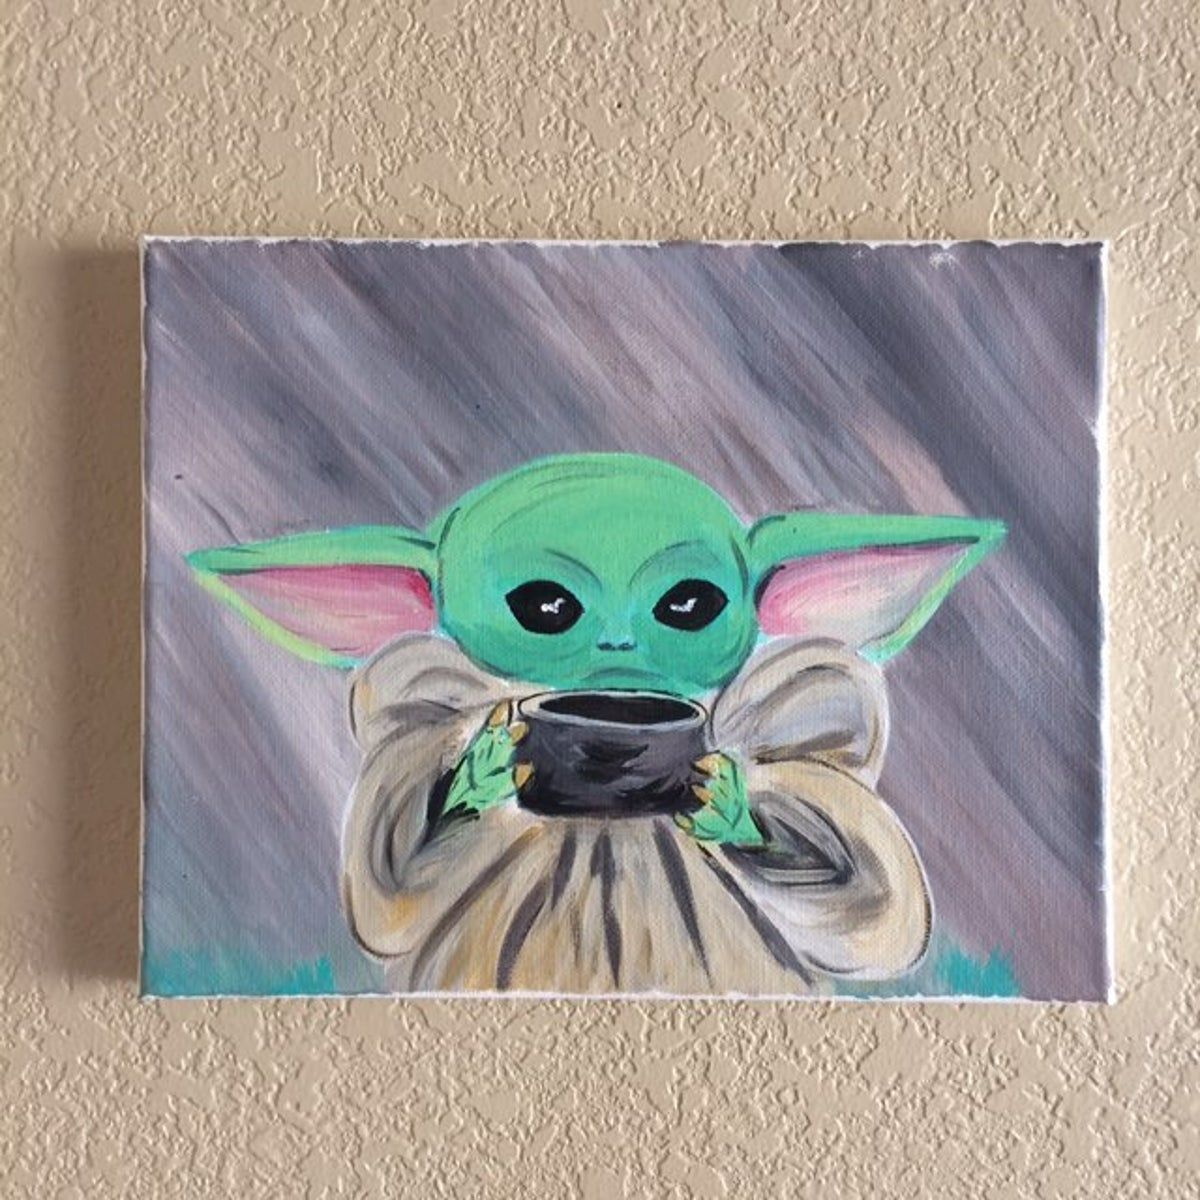 Baby Yoda Painting 8x10 Sipping Tea Meme Marvel Canvas Art Star Wars Canvas Art Star Wars Painting